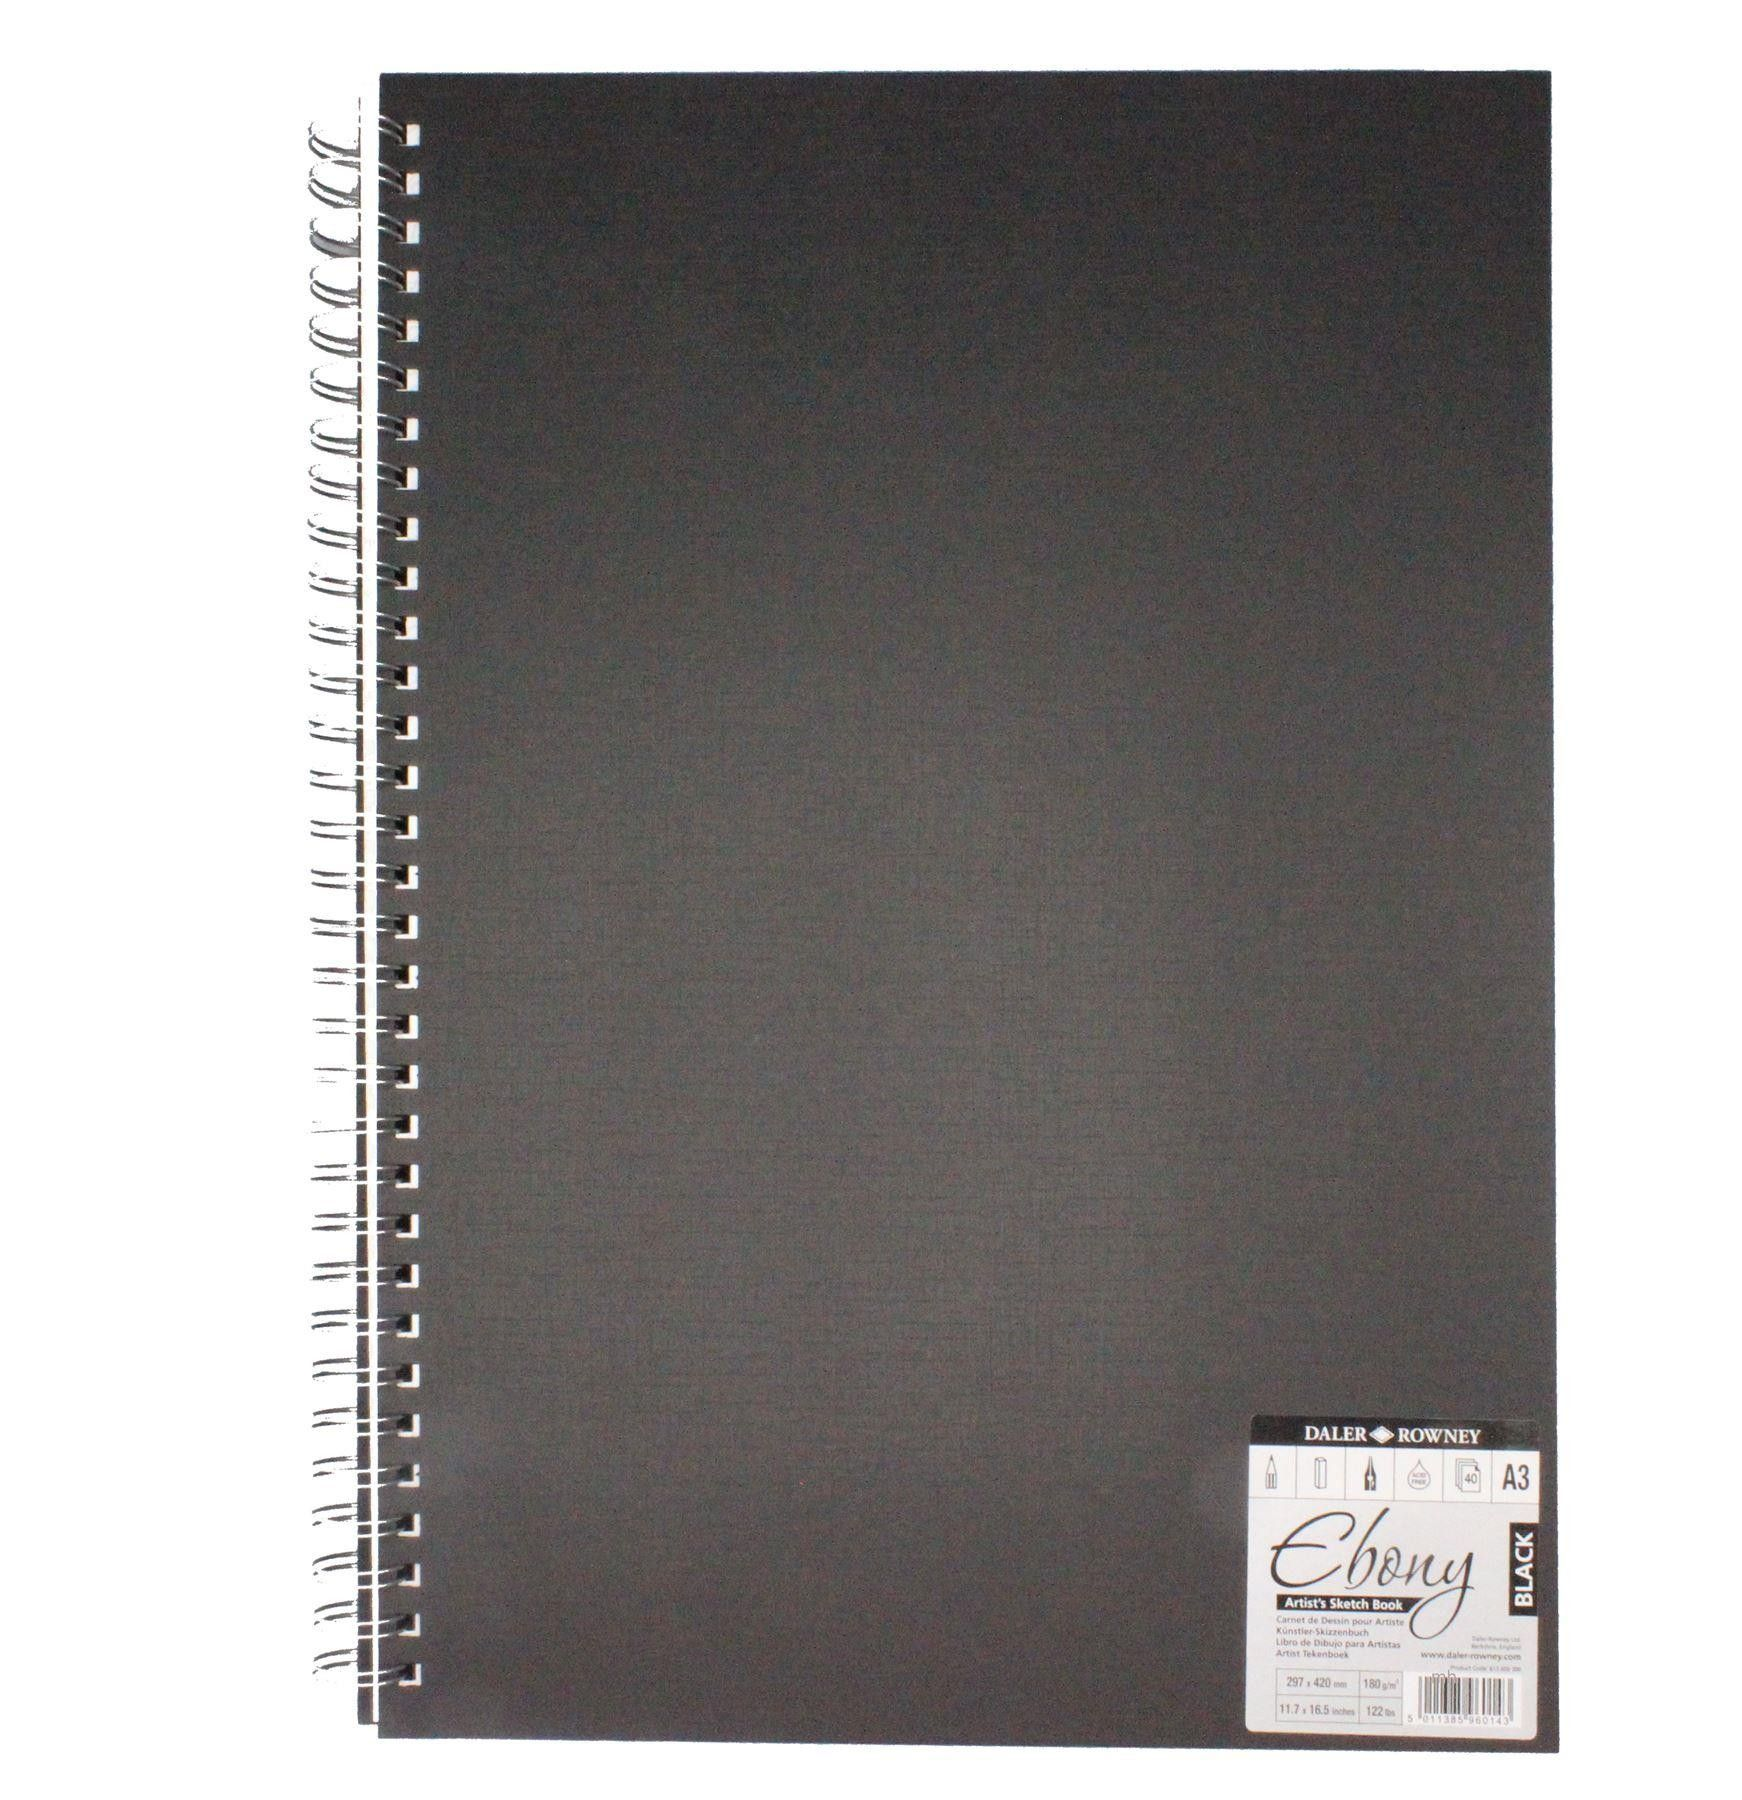 40 Wire Bound Black 180gsm pages A4 Portrait Daler Rowney Ebony Sketchbook